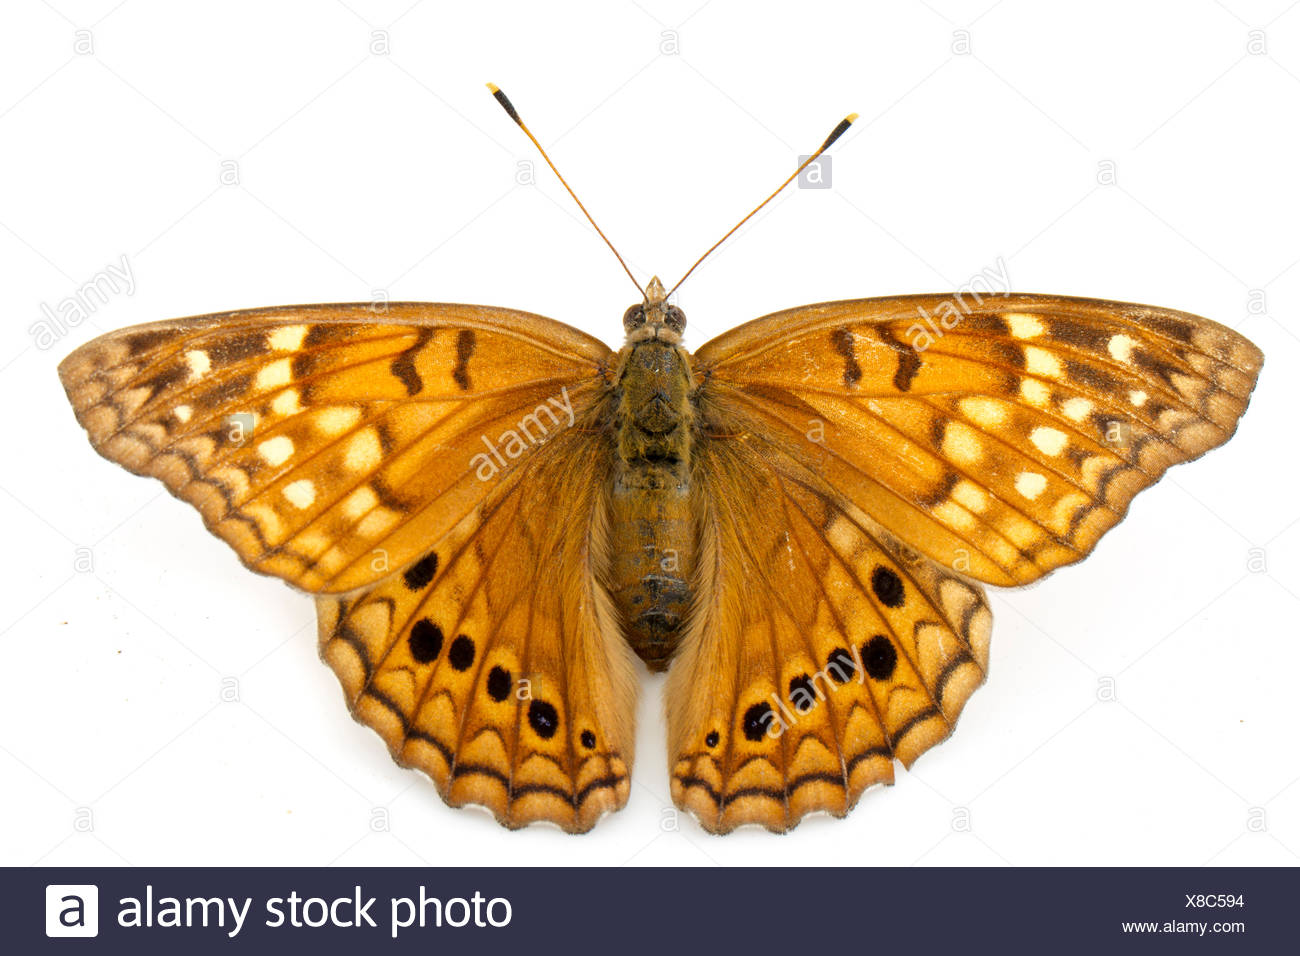 Tawny Emperor Butterfly (Asterocampa clyton) Martin Dies Jr State Park, Jasper County, Texas, USA. - Stock Image